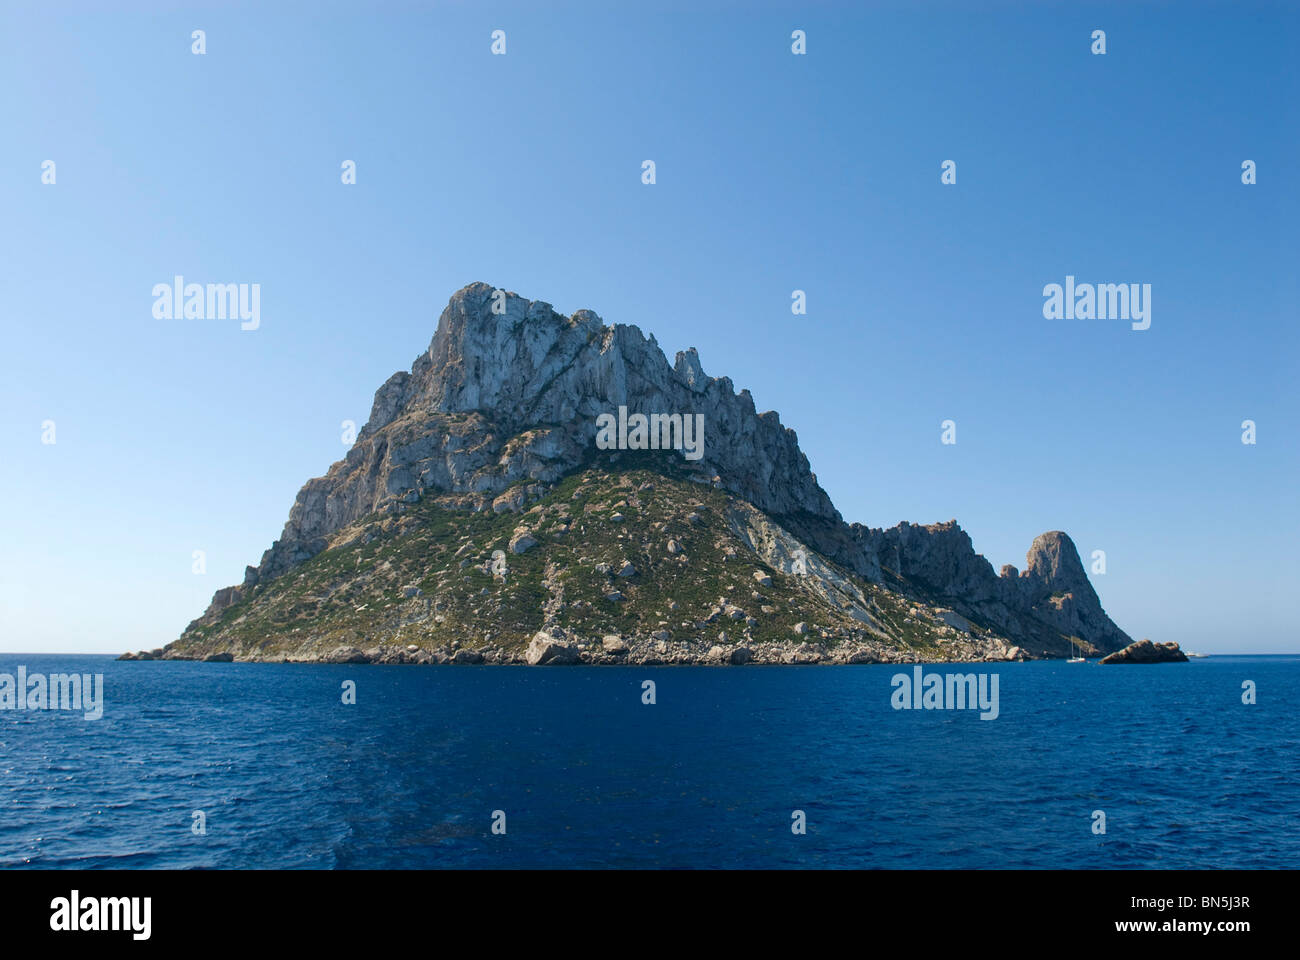 Es Vedra, Ibiza, Balearics, Spain - Stock Image